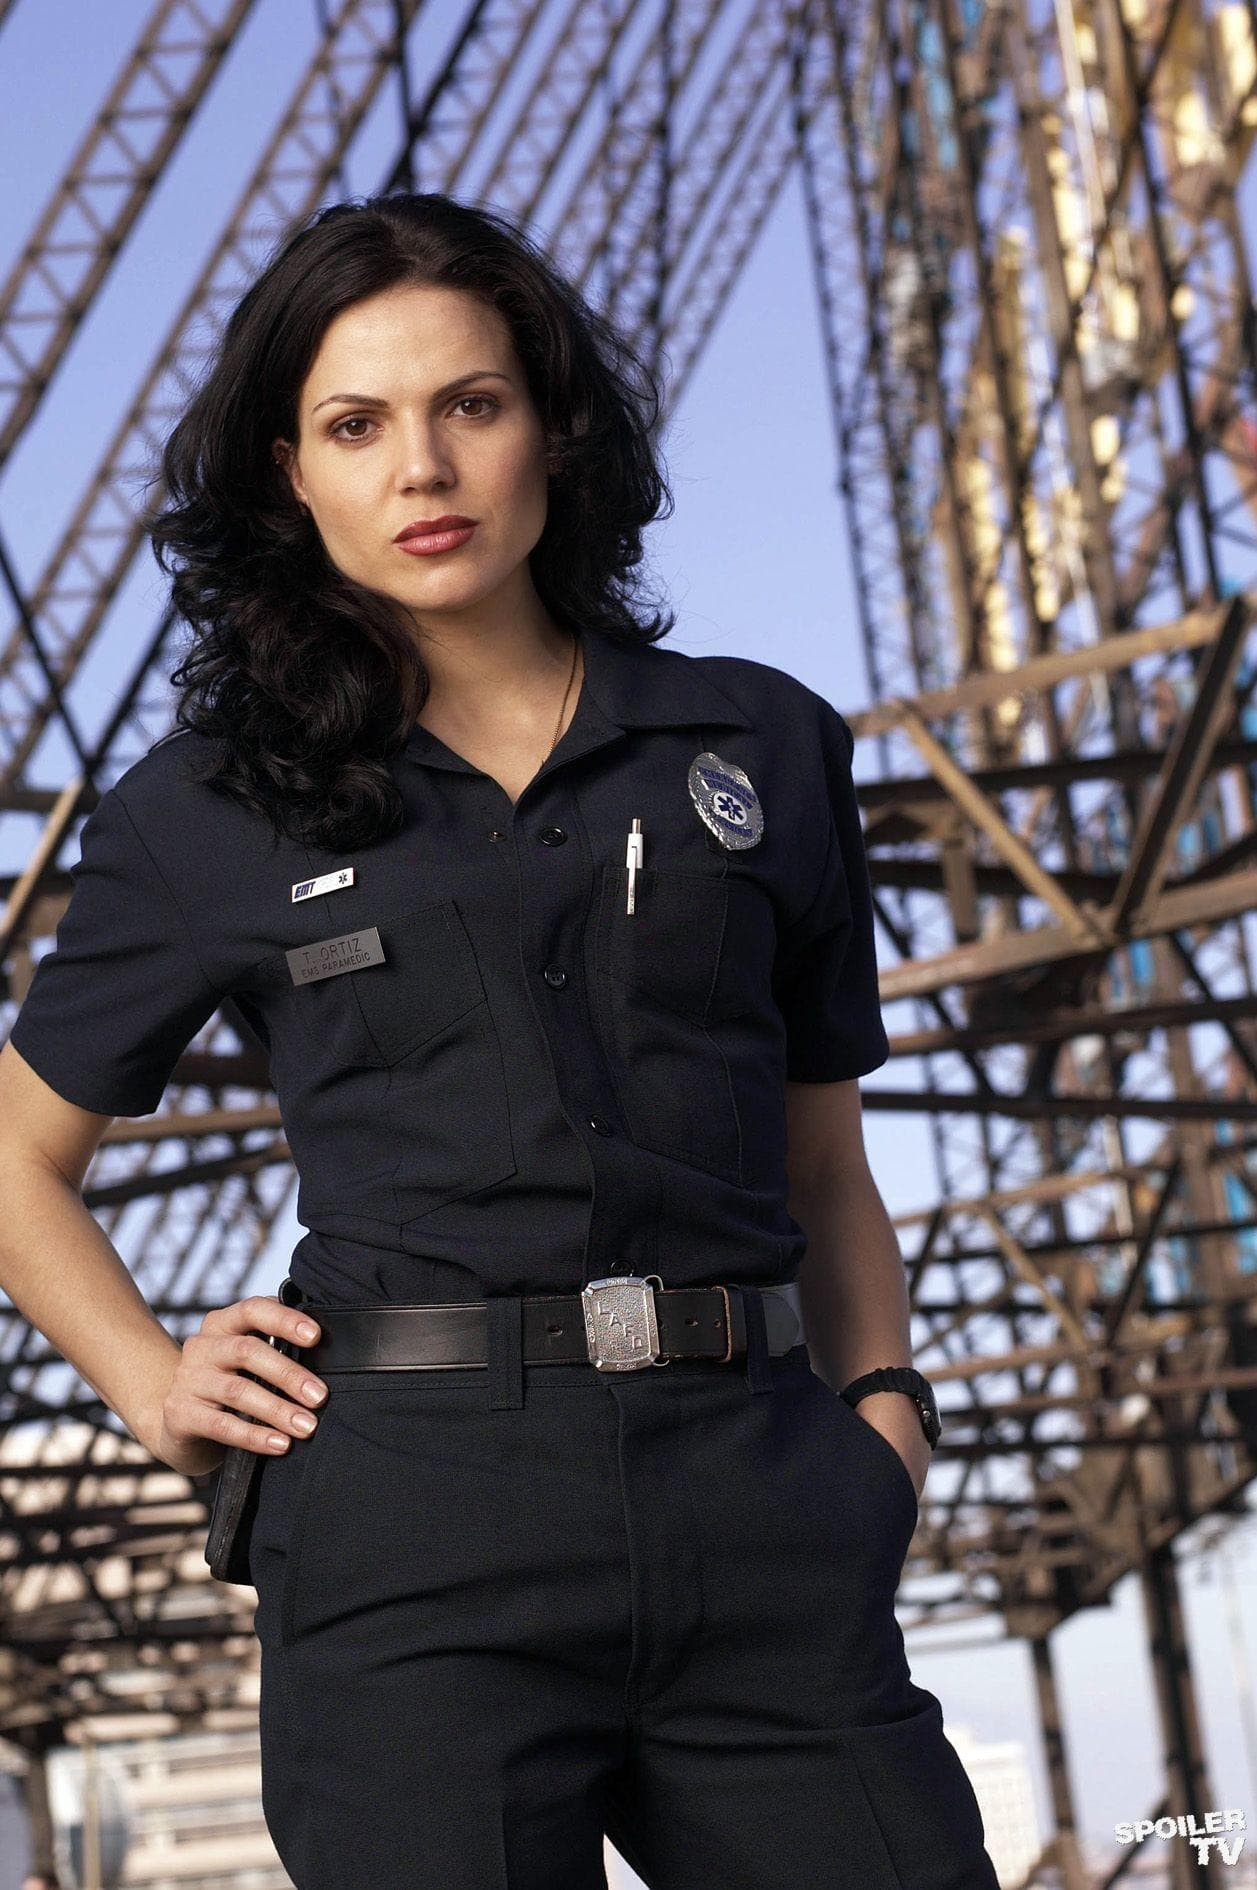 Lana Parrilla High